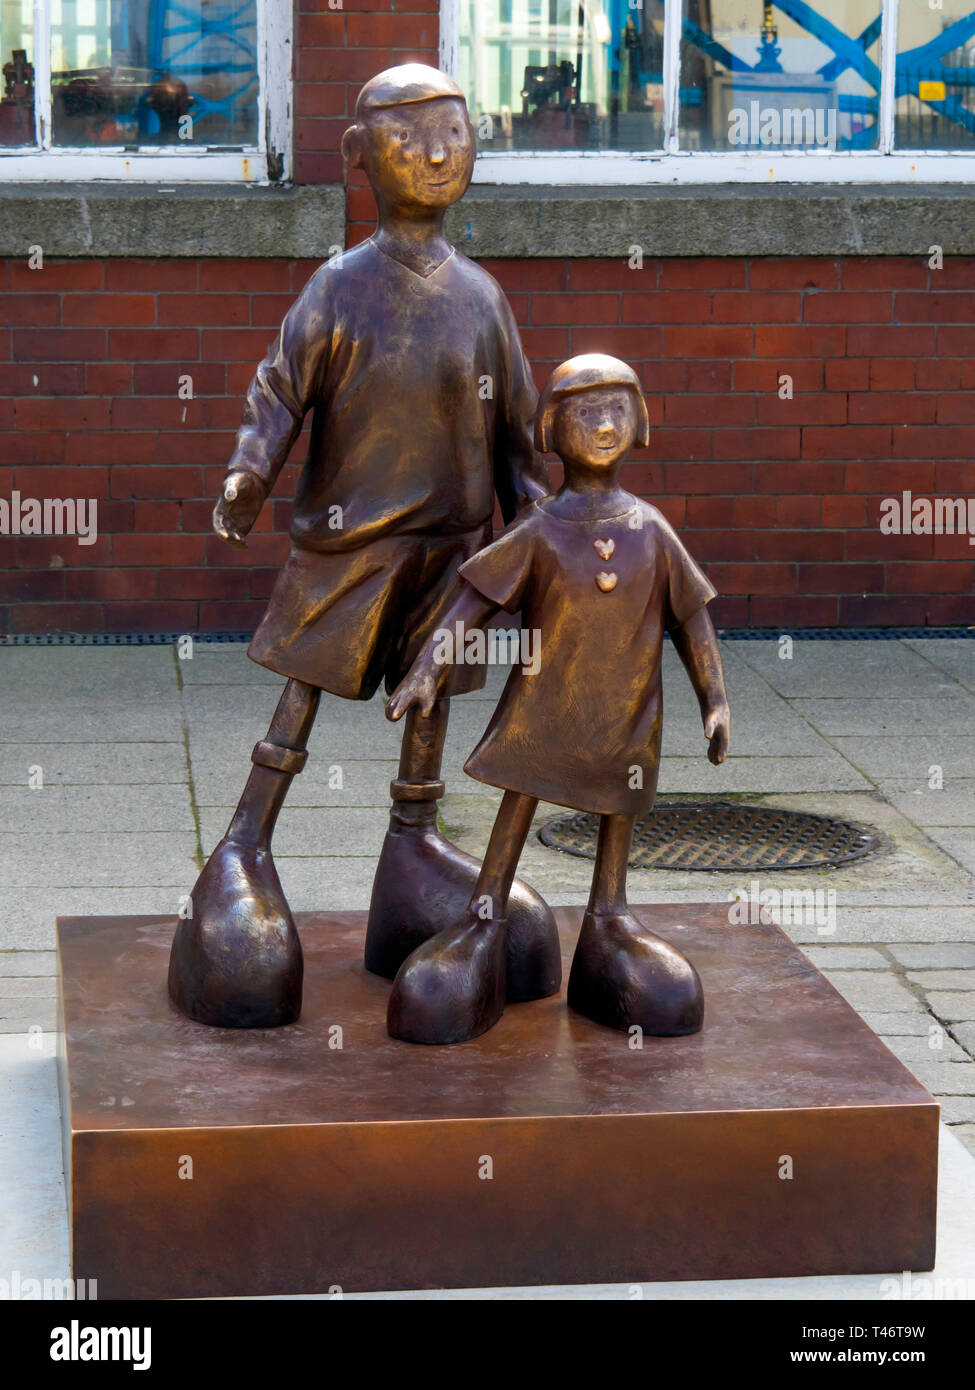 "Life size bronze sculpture of two children ""Waiting for me dad"" by local artist Mackenzie Thorpe at the Middlesbrough Transporter bridge Stock Photo"